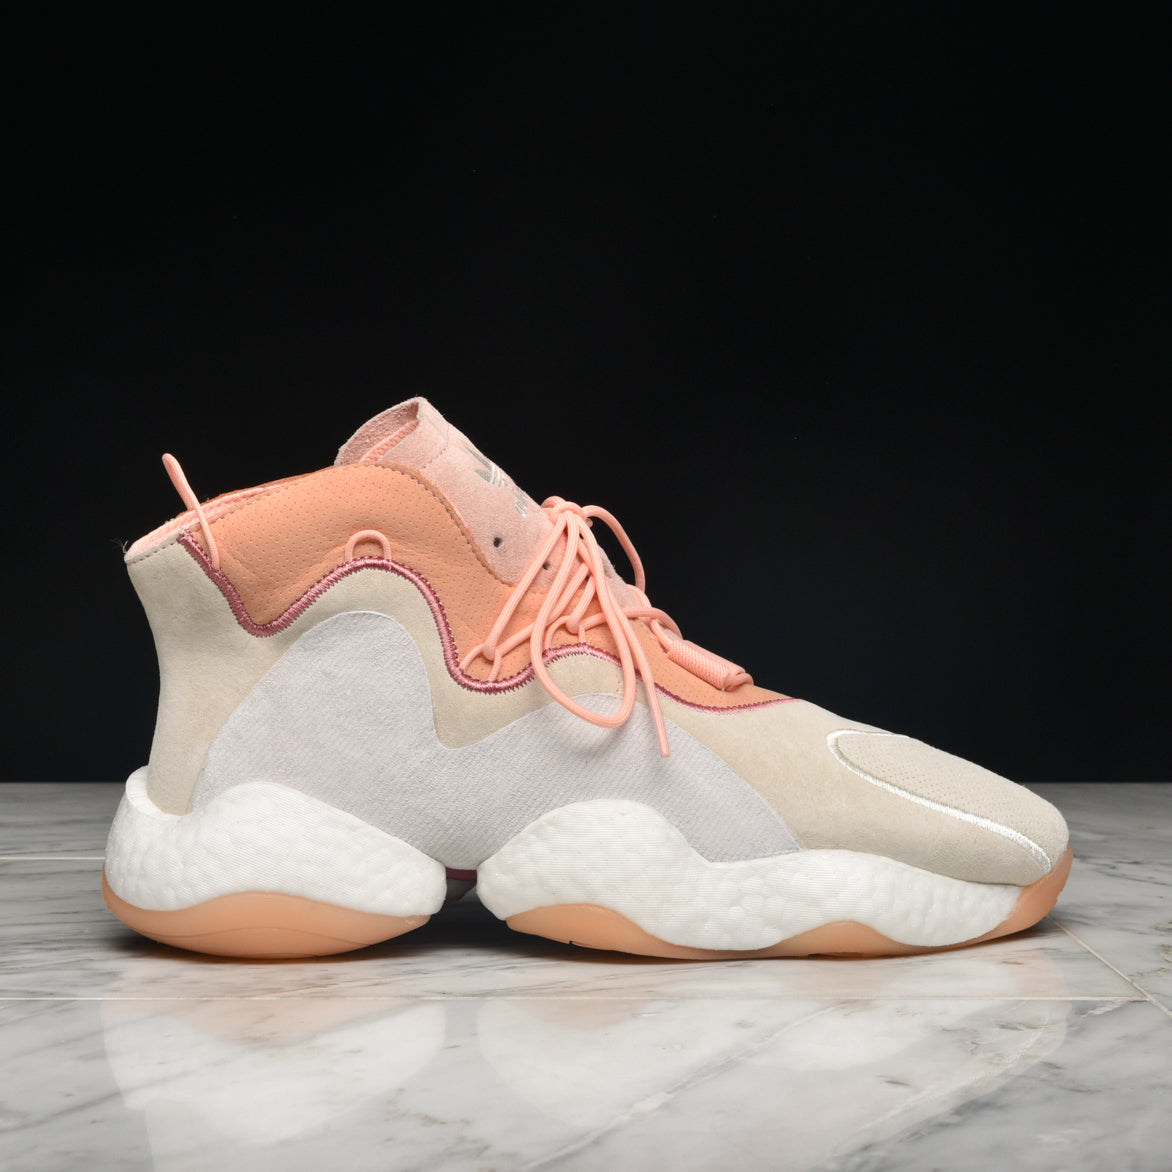 CRAZY BYW - CREAM WHITE / CLEAR ORANGE